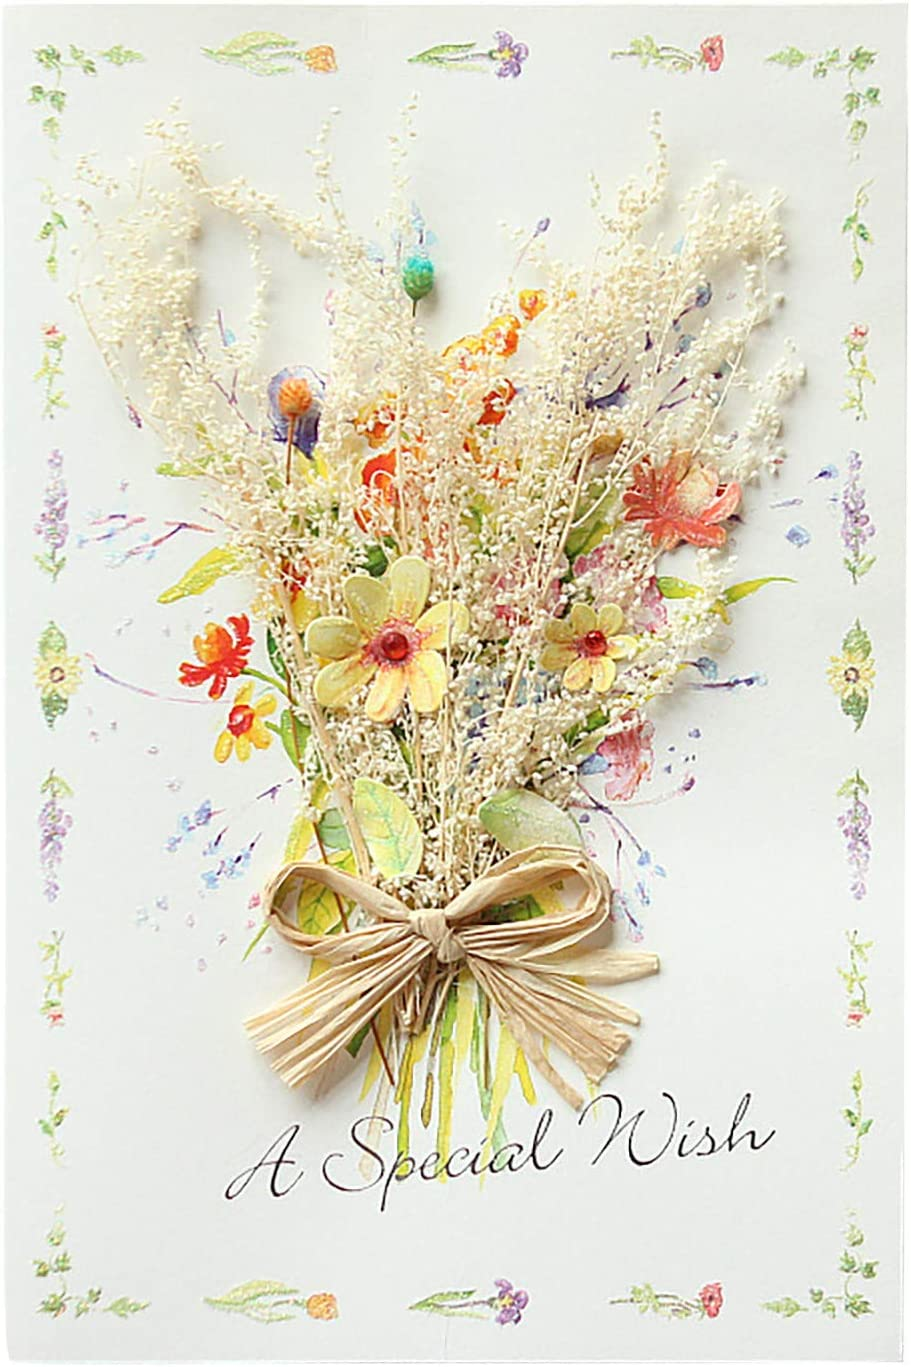 3D CARNATION DRIED FLOWER GREETING CARD MOTHER`S DAY GREETING CARD HANDMADE CREATIVE MOTHER`S DAY BLESSING CARD THANK YOU CARDS WOMEN`S DAY PAPER SCULPTURE CARD GREETING CARD (B)